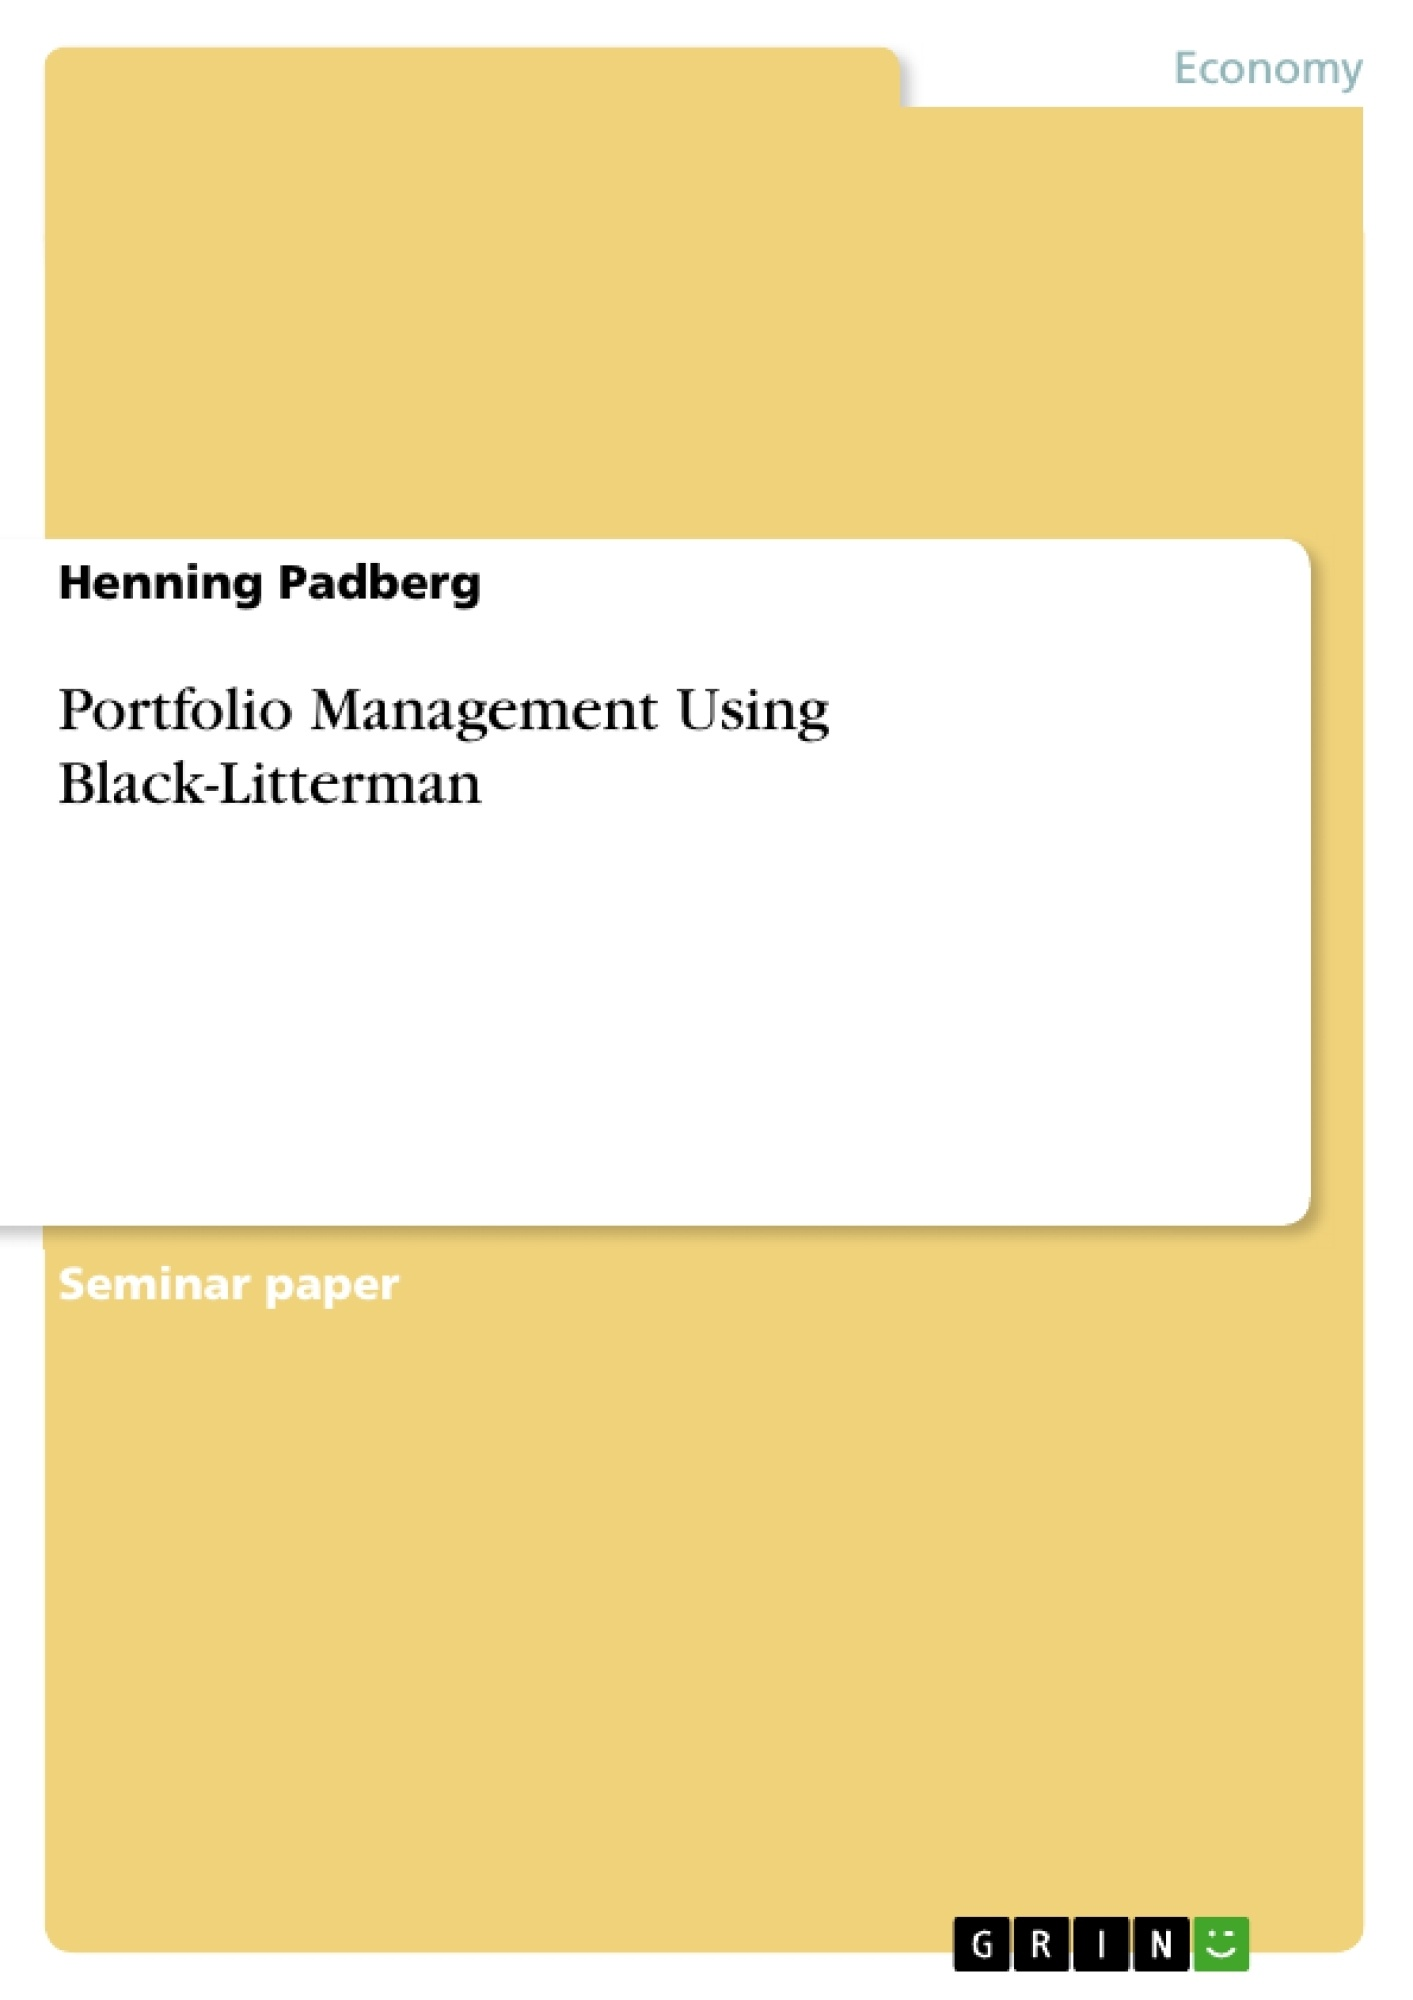 Title: Portfolio Management Using Black-Litterman